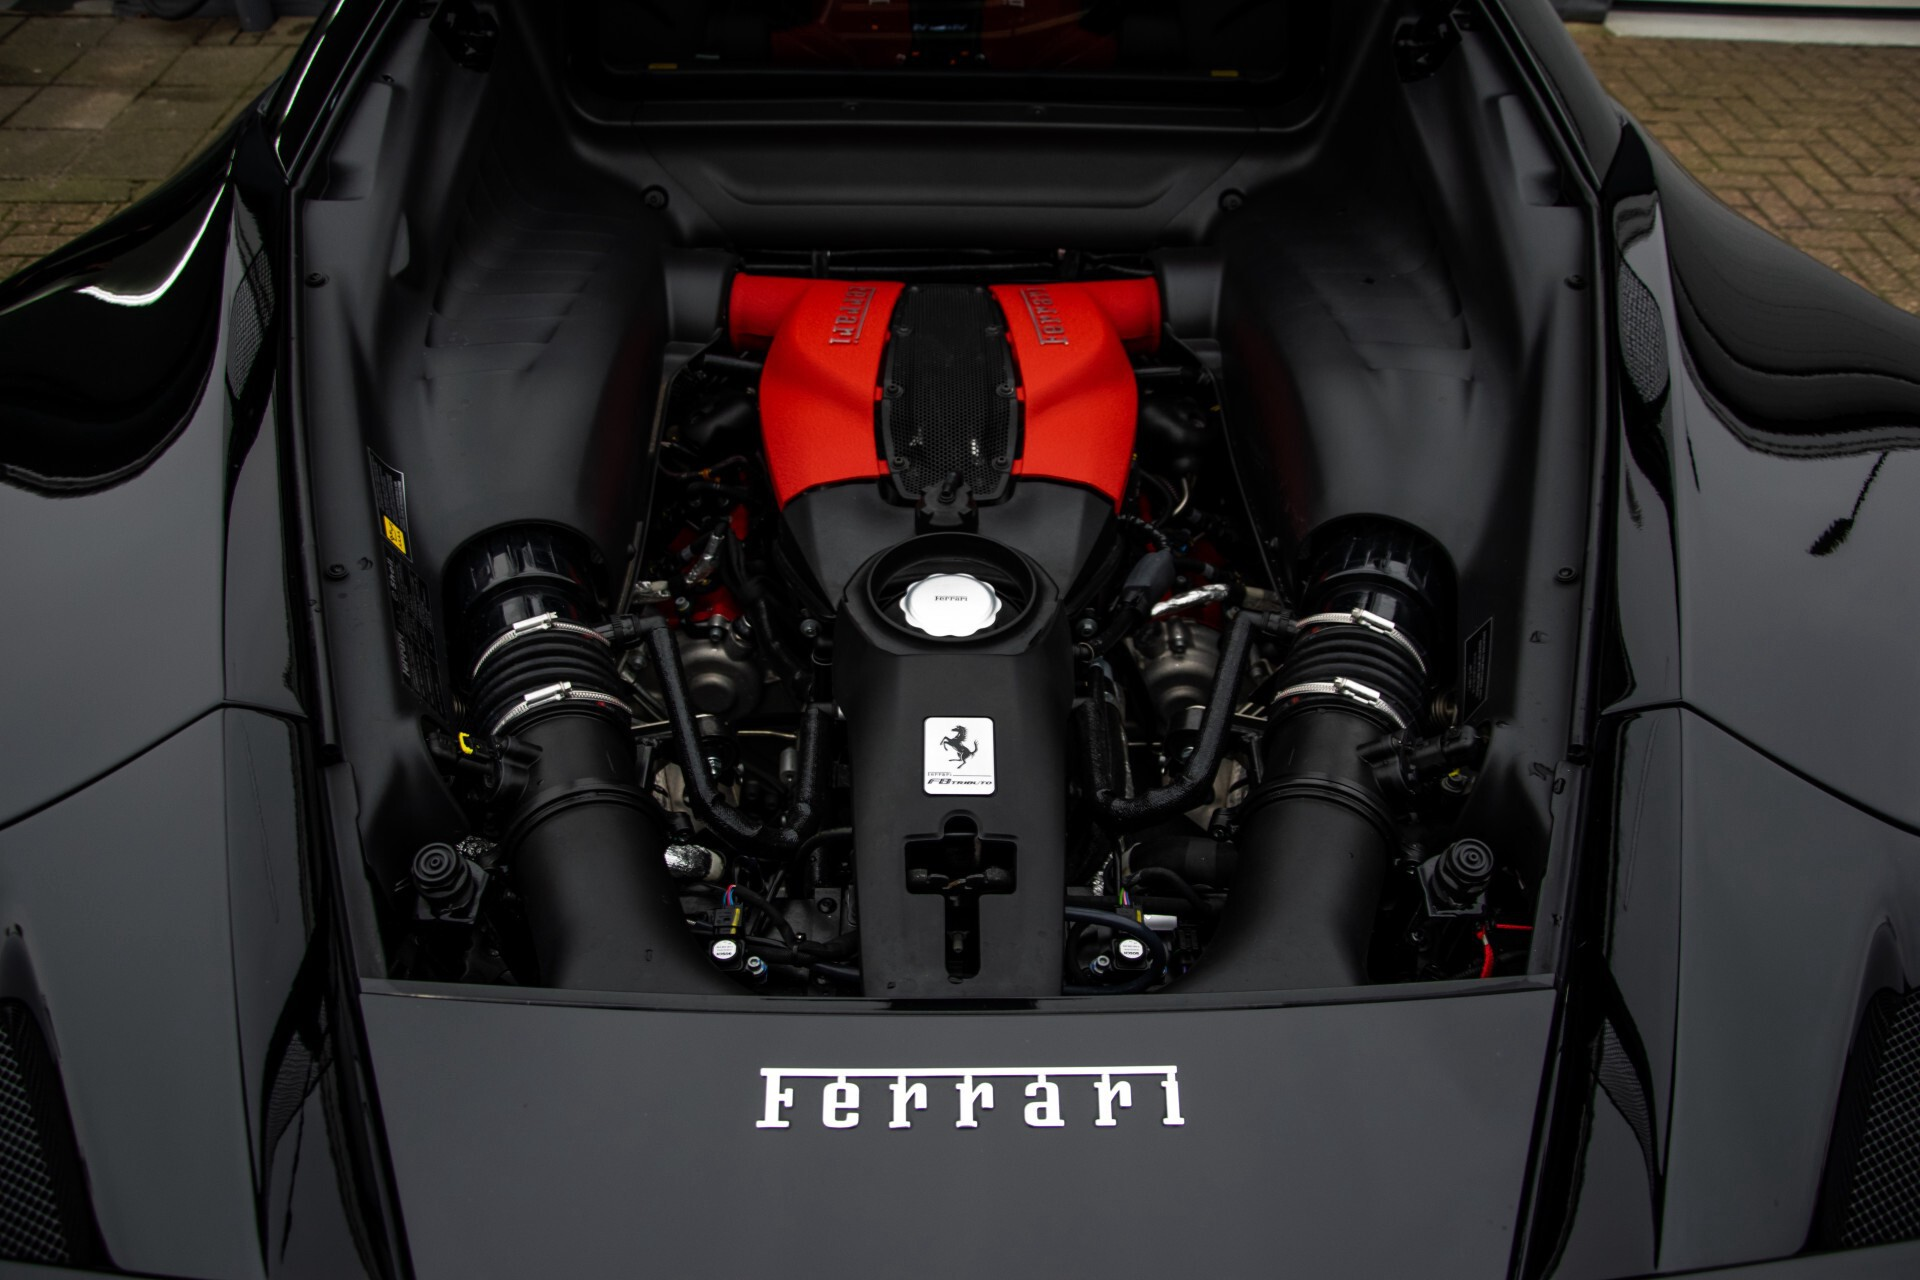 Ferrari F8 Tributo 3.9 V8 HELE Novitech Full Carbon/Lift/Racing Seats/Passenger Display/Hifi Foto 52